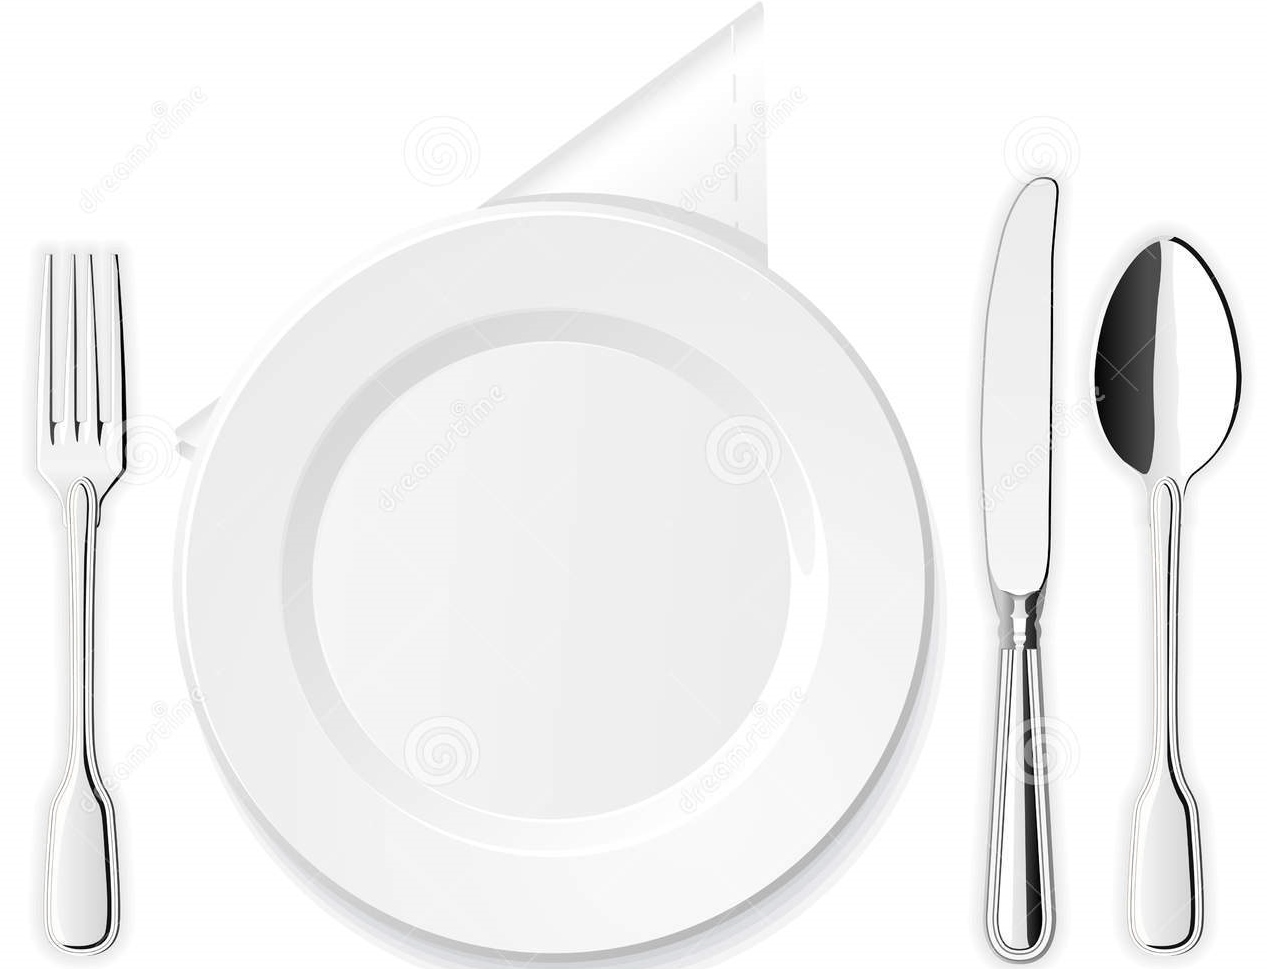 plate-knife-spoon-fork-23241692